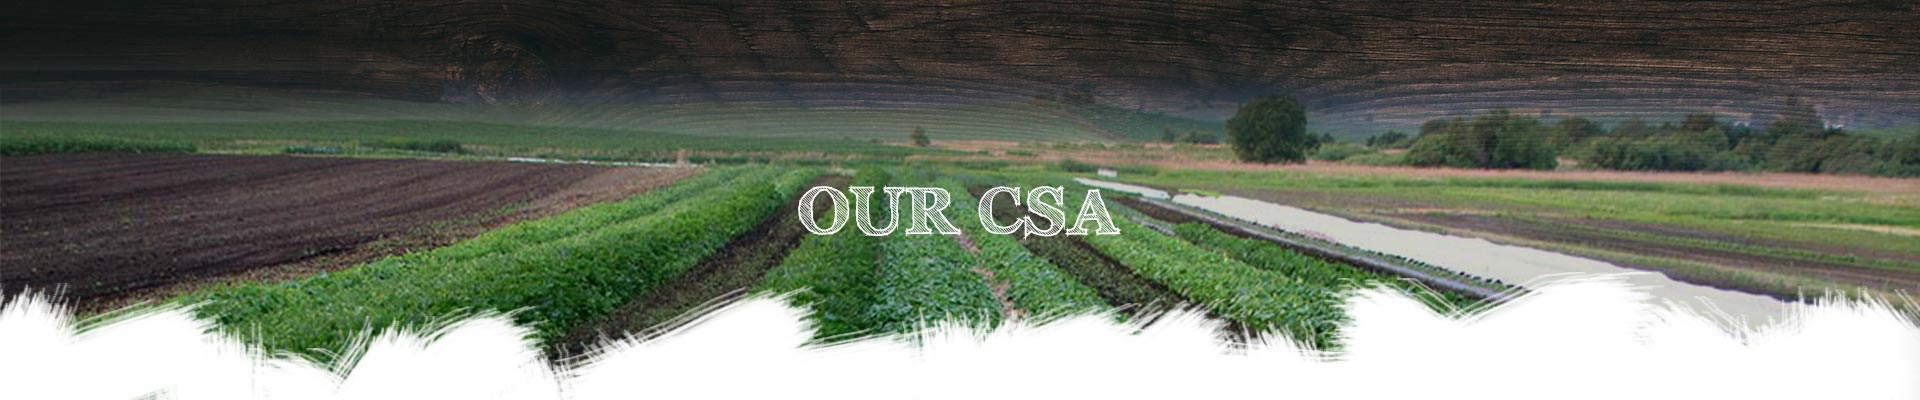 ourcsa